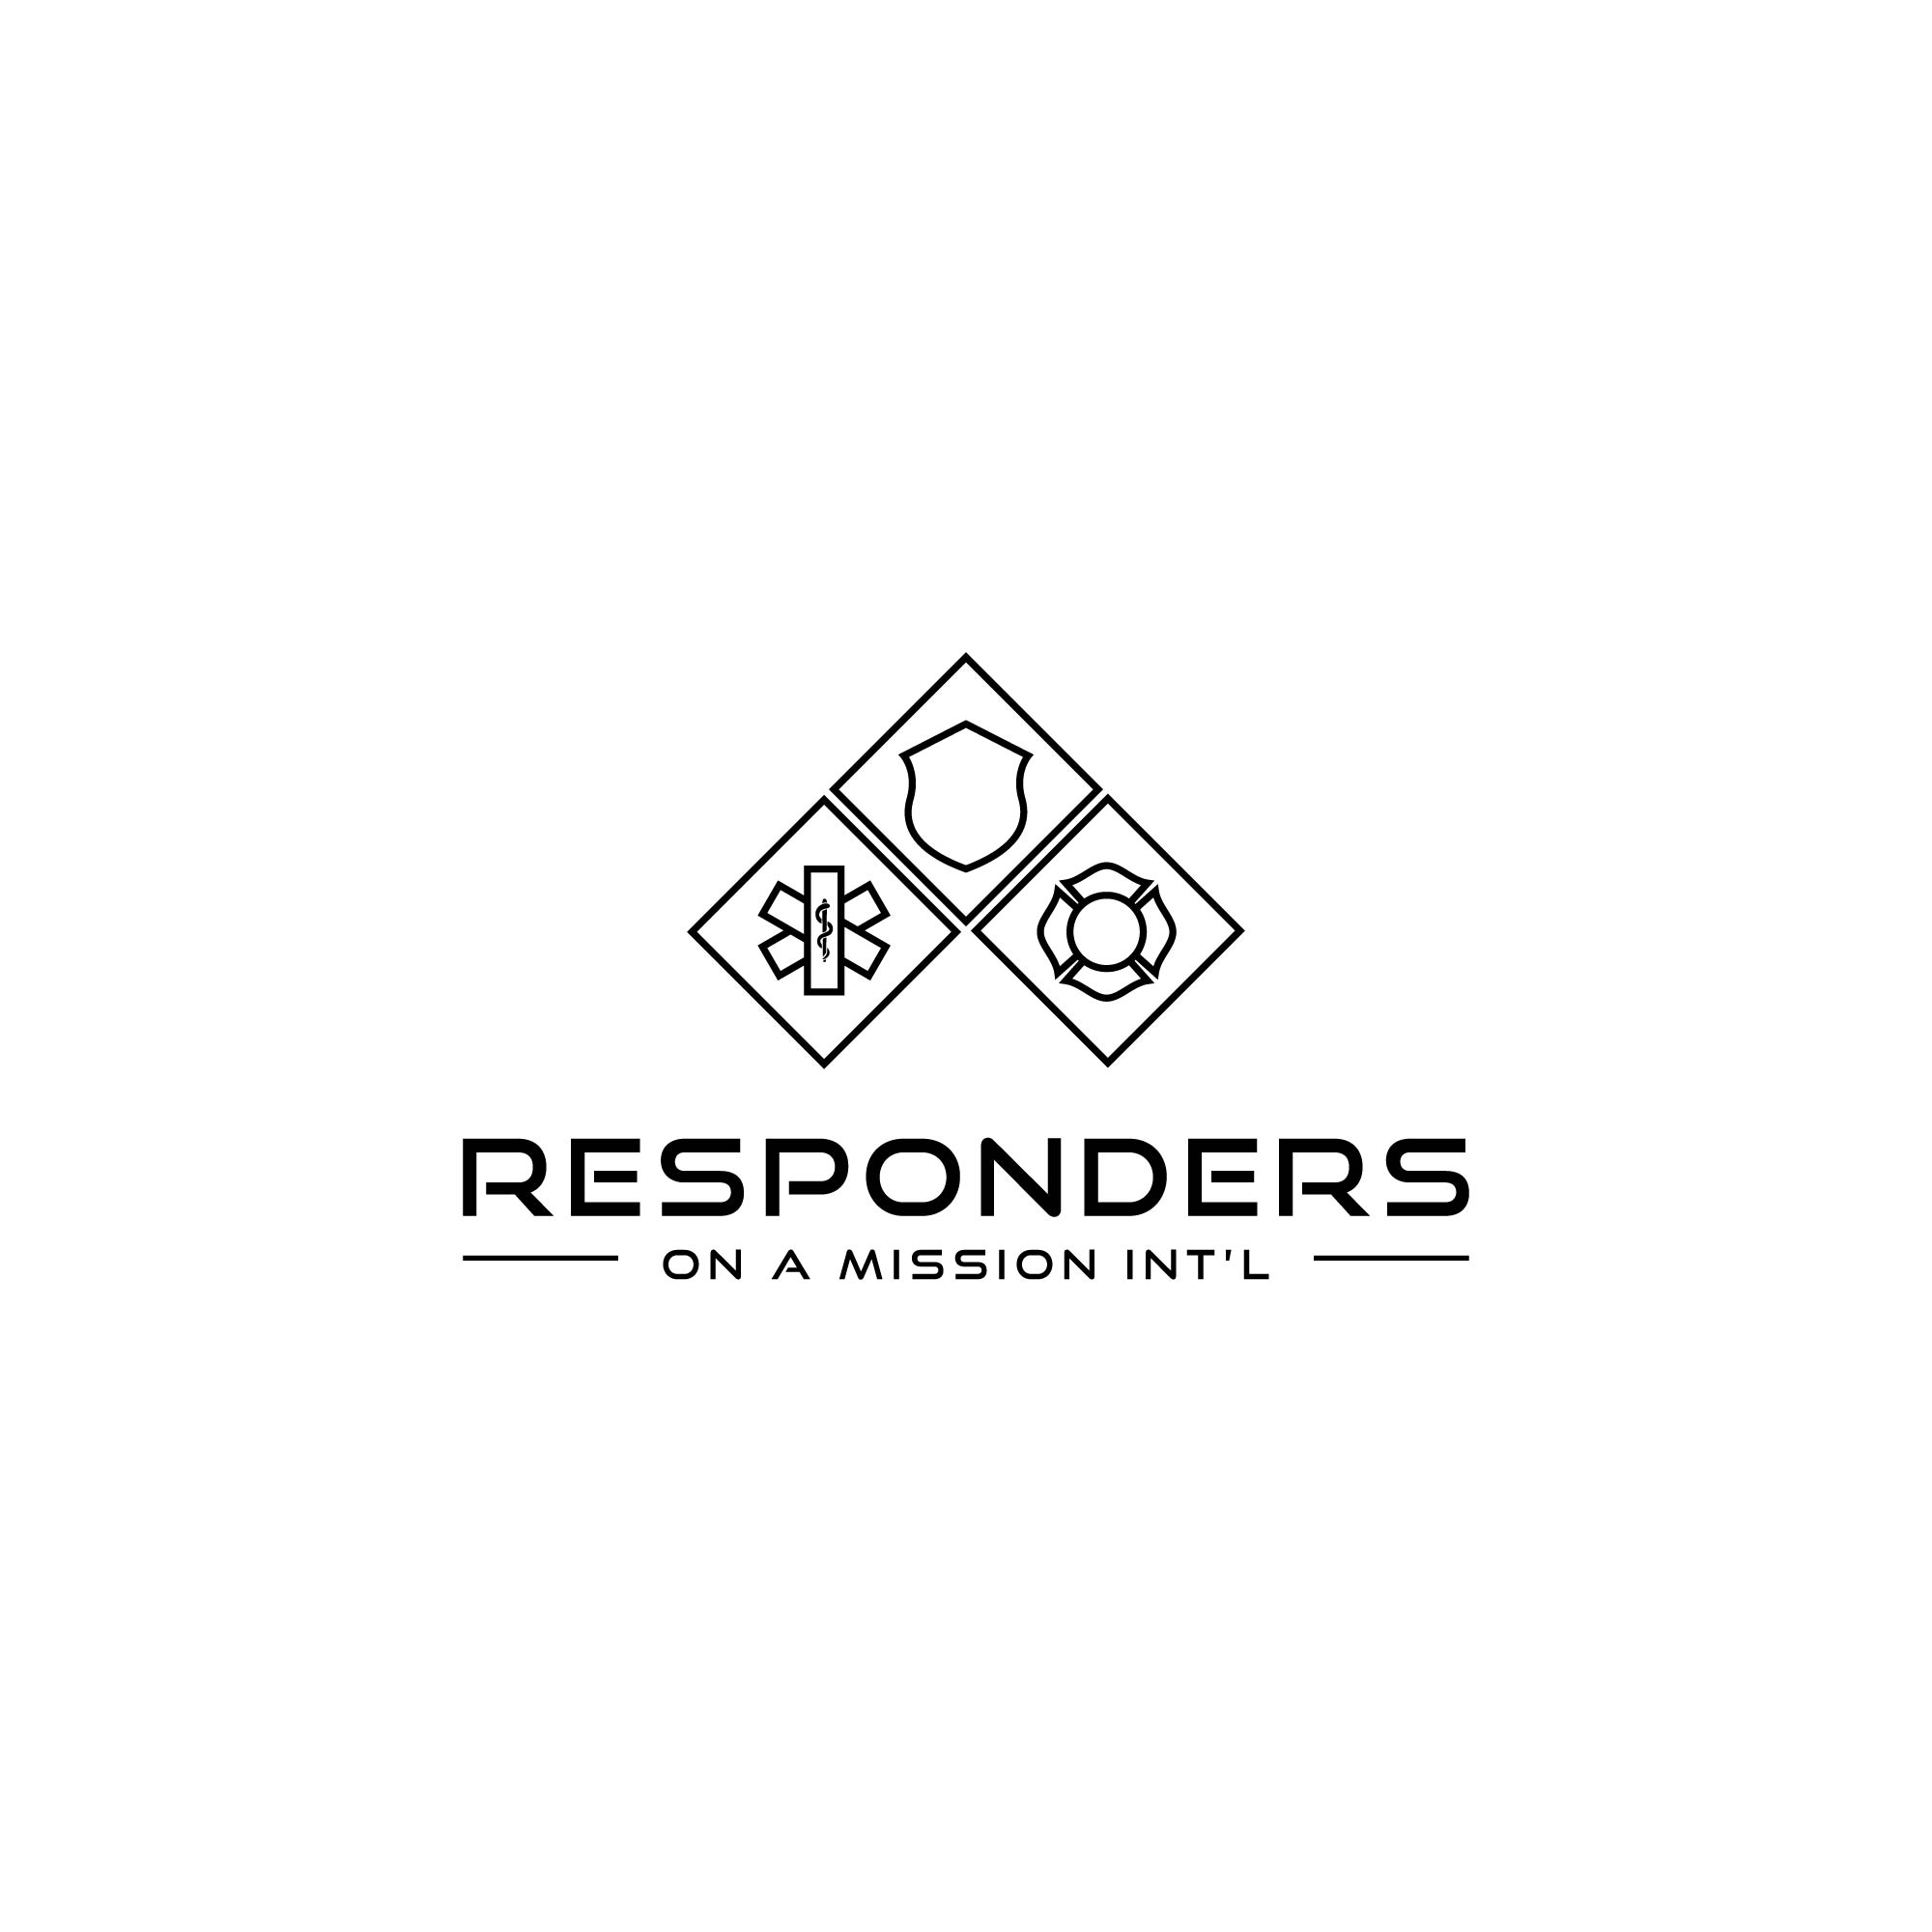 Responders On A Mission